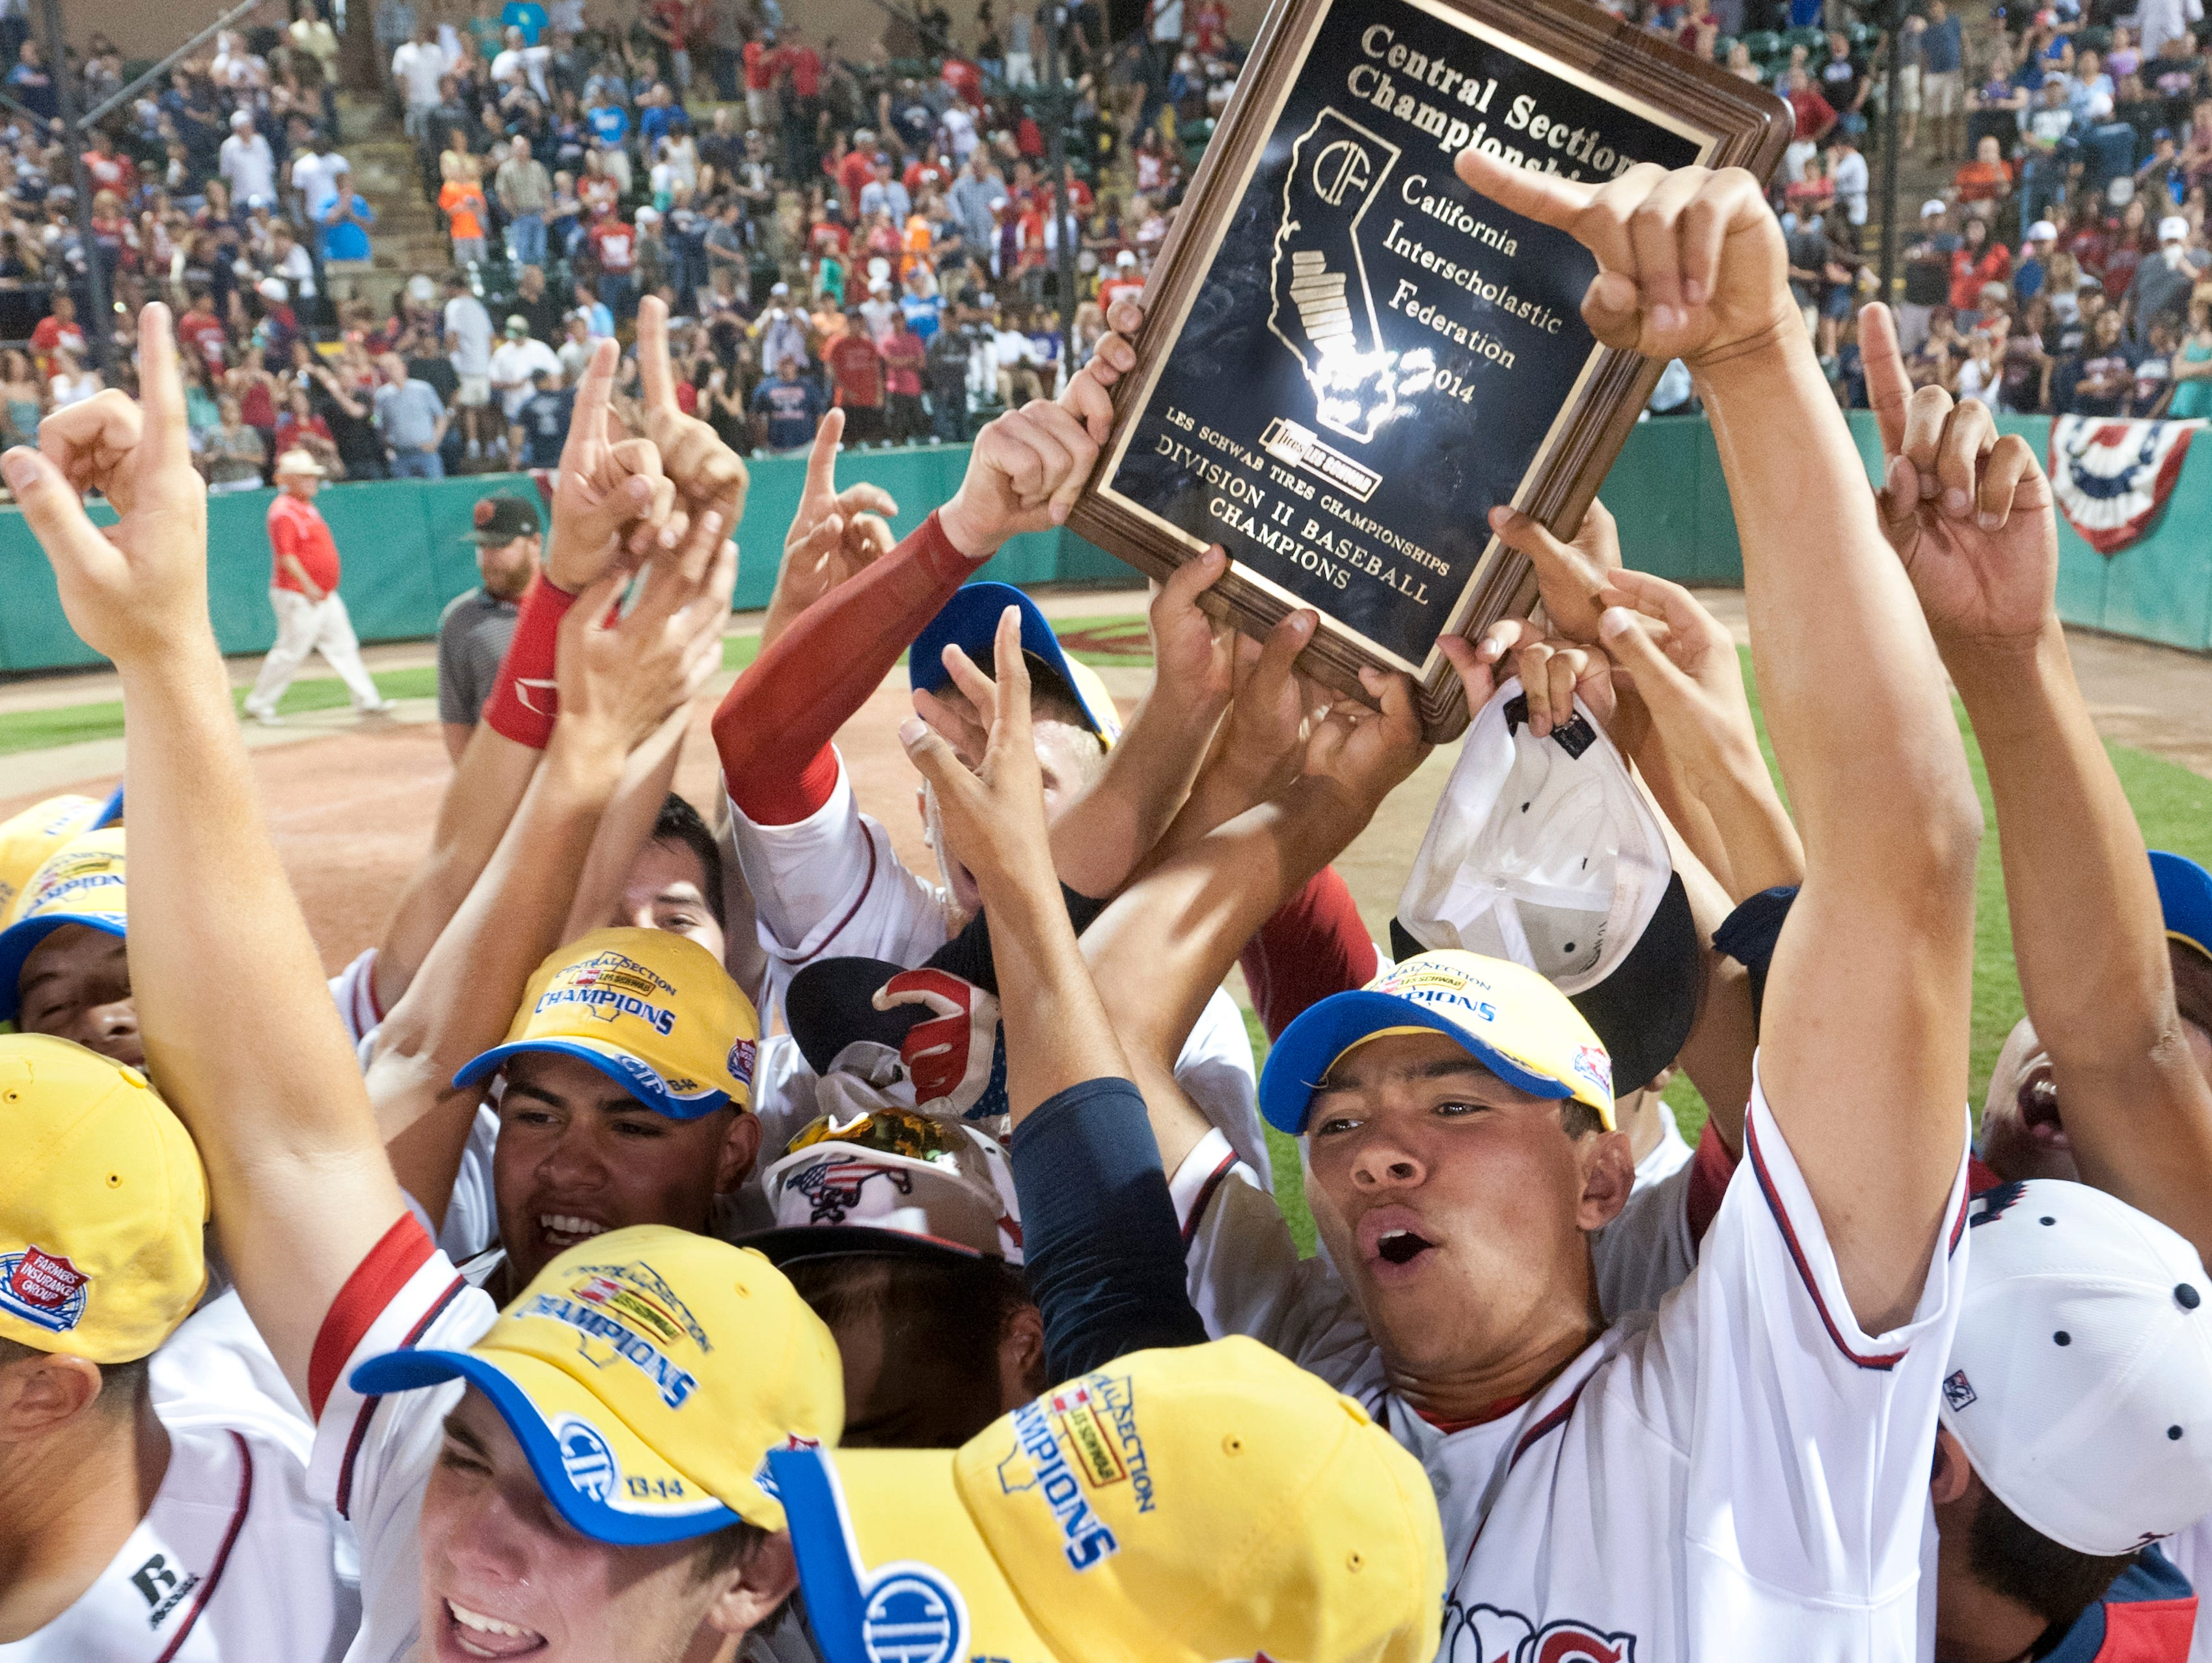 Tulare Western, the 2014 Central Section Division II champion, will be in Division I for the 2015 Central Section baseball playoffs.